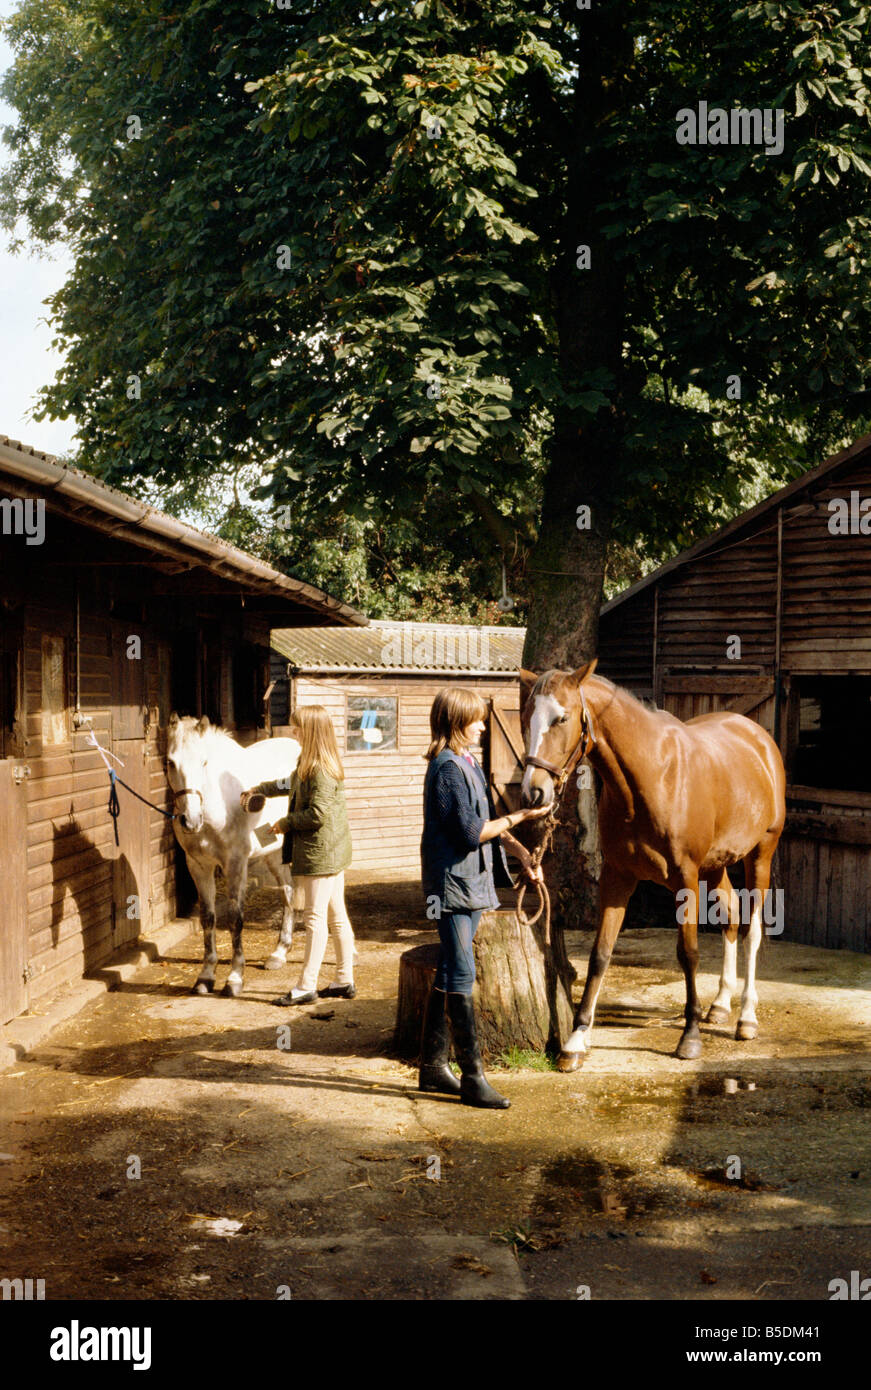 Frith Manor Livery Stables England United Kingdom Europe - Stock Image